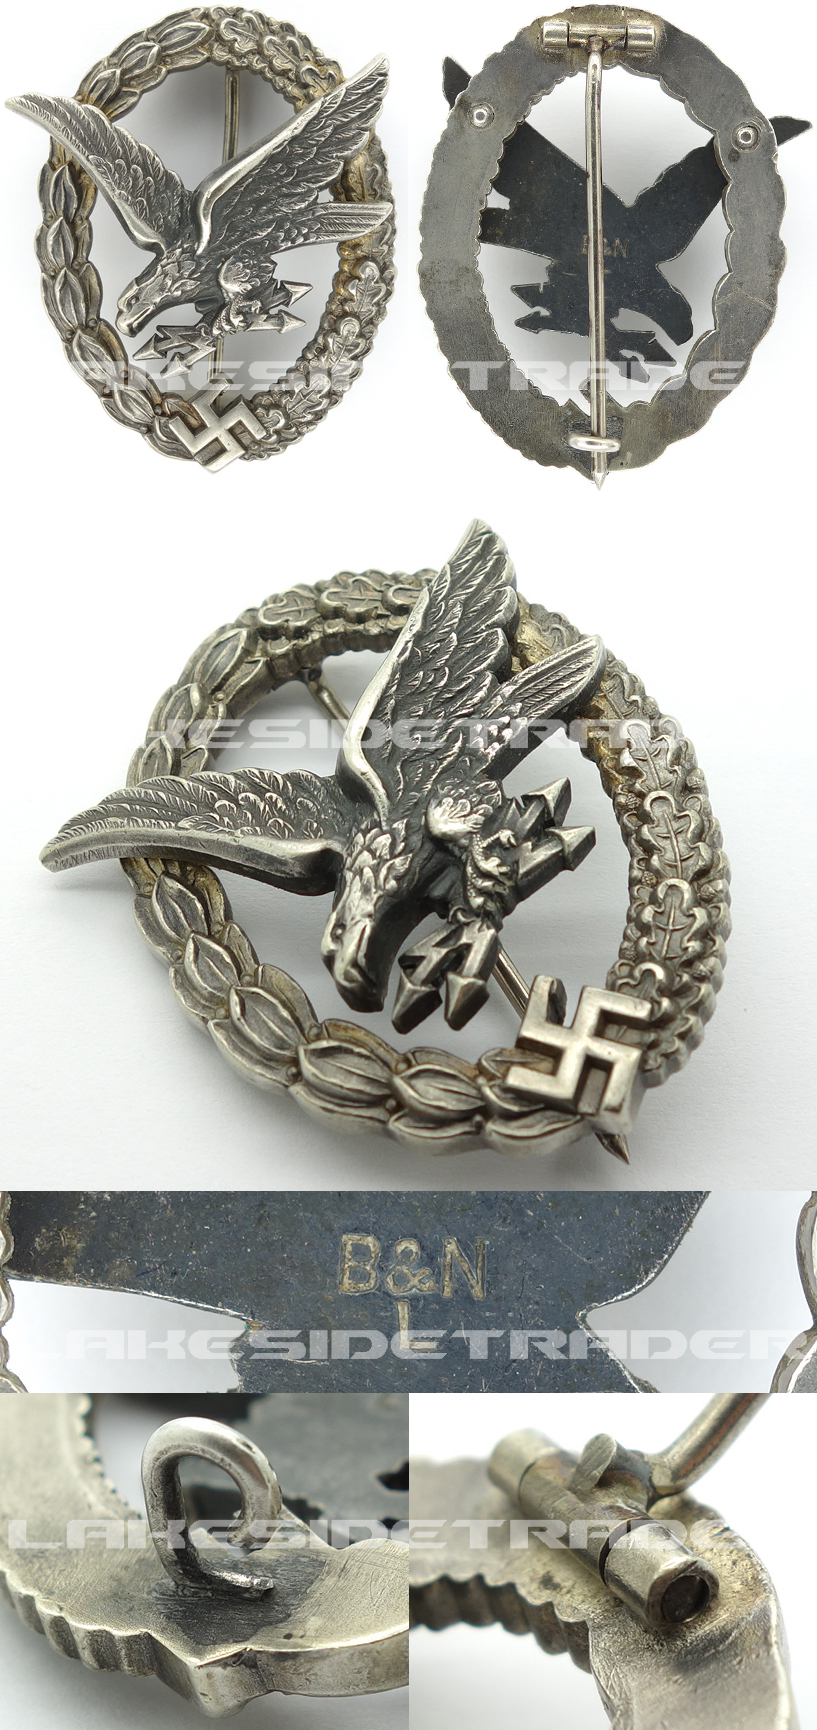 Radio Operator/Air Gunner Badge by B&N L